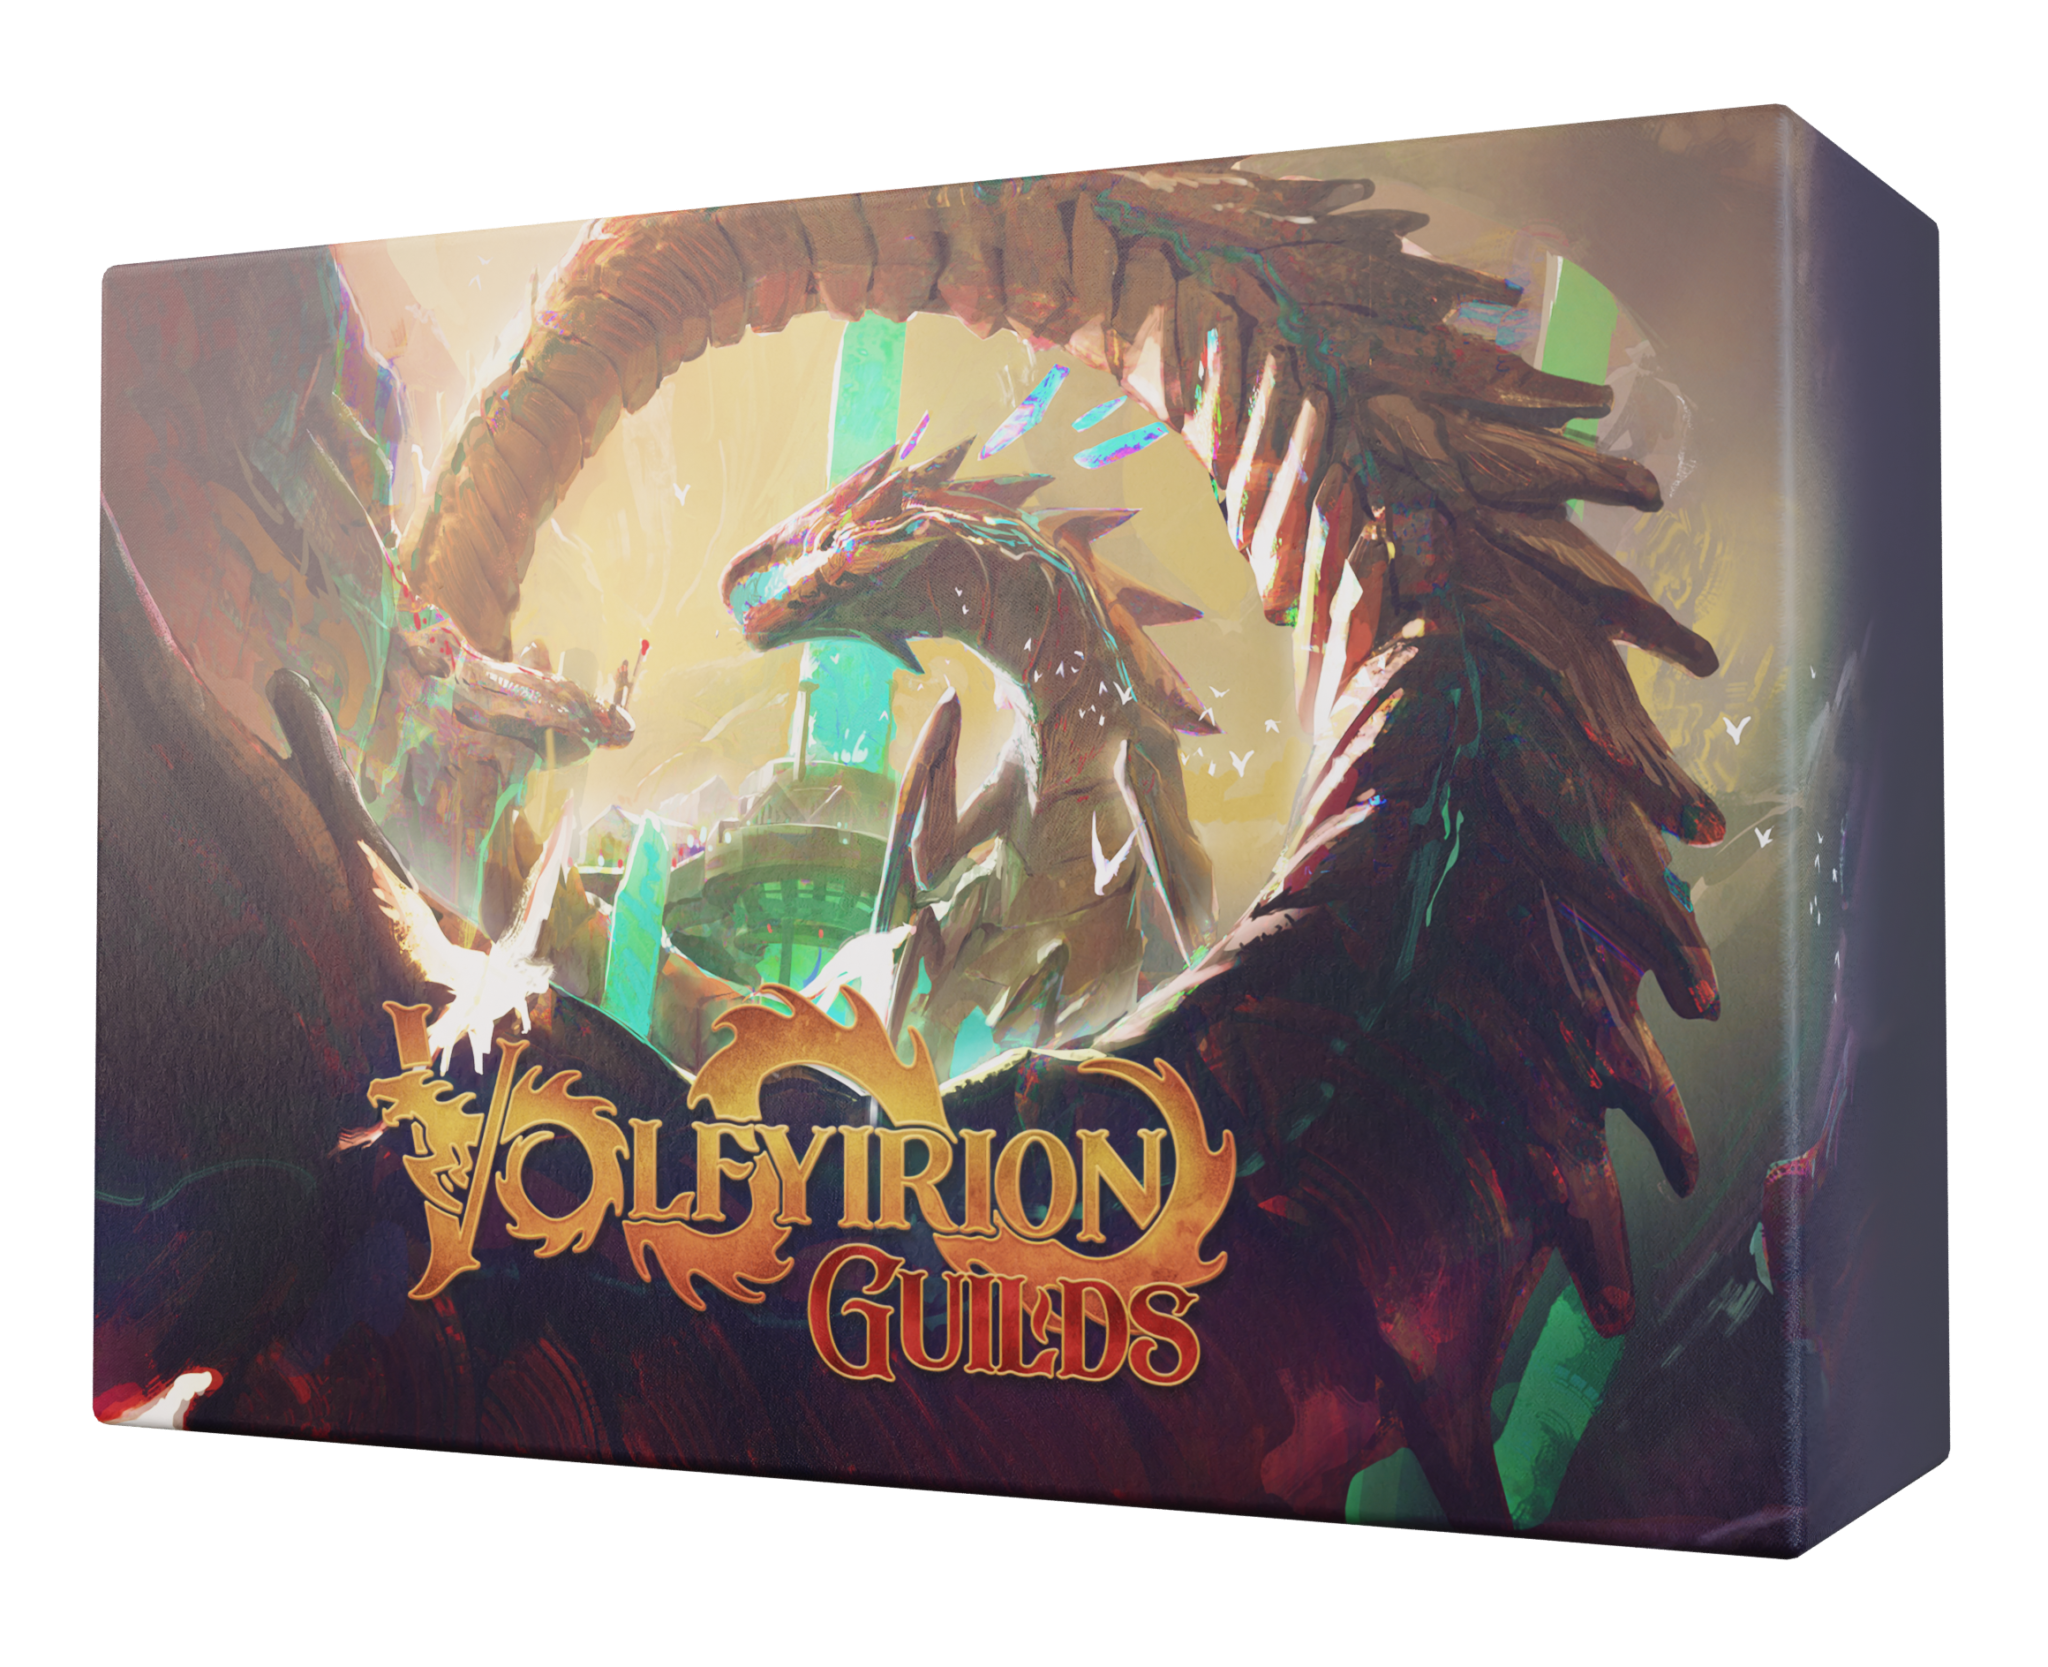 Volfyirion Guilds board game box